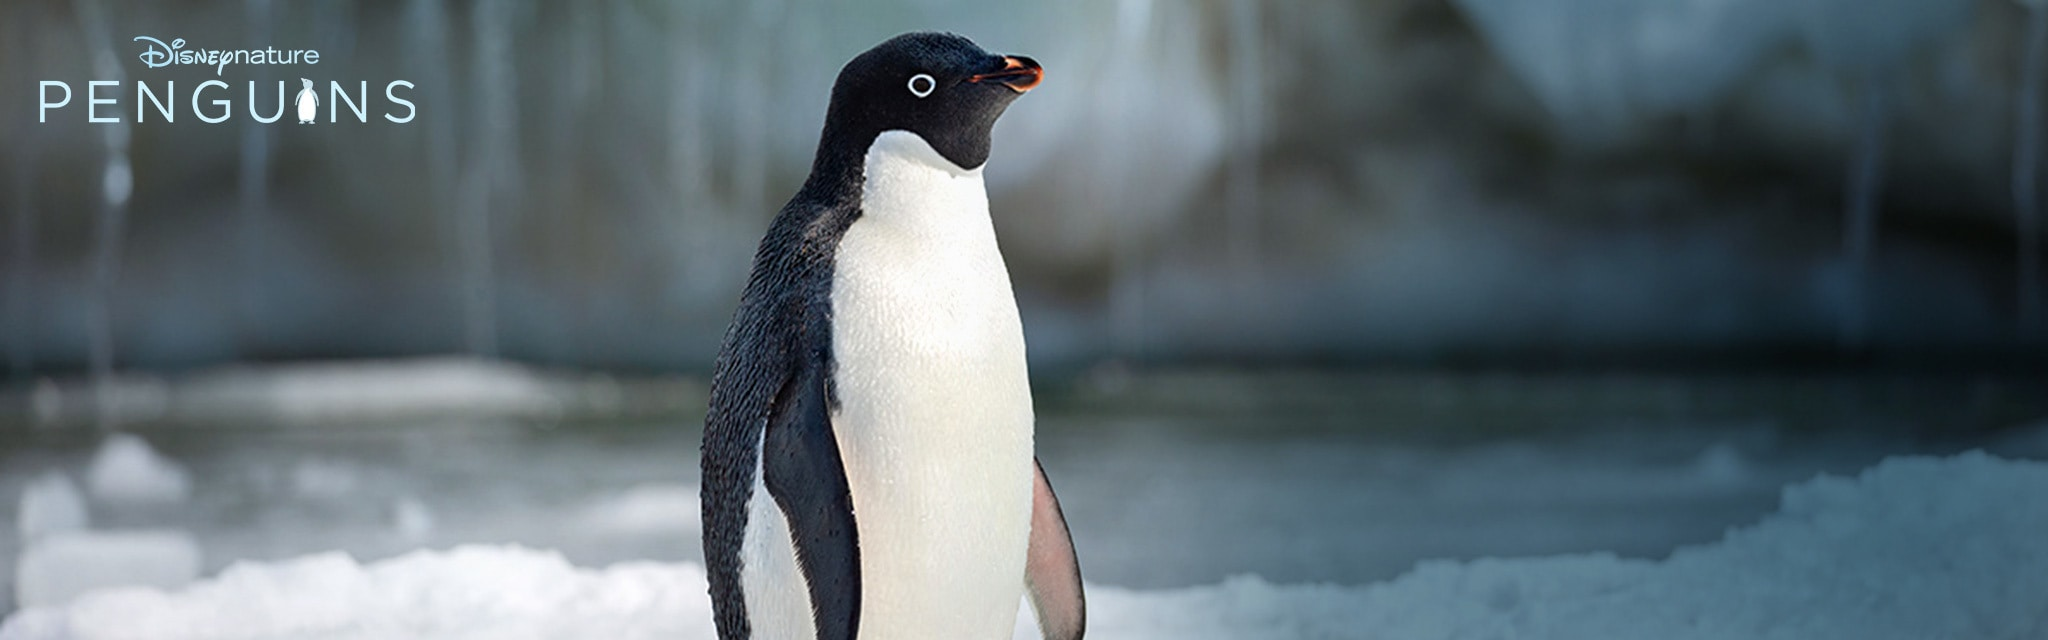 Disneynature - Penguins - Hero